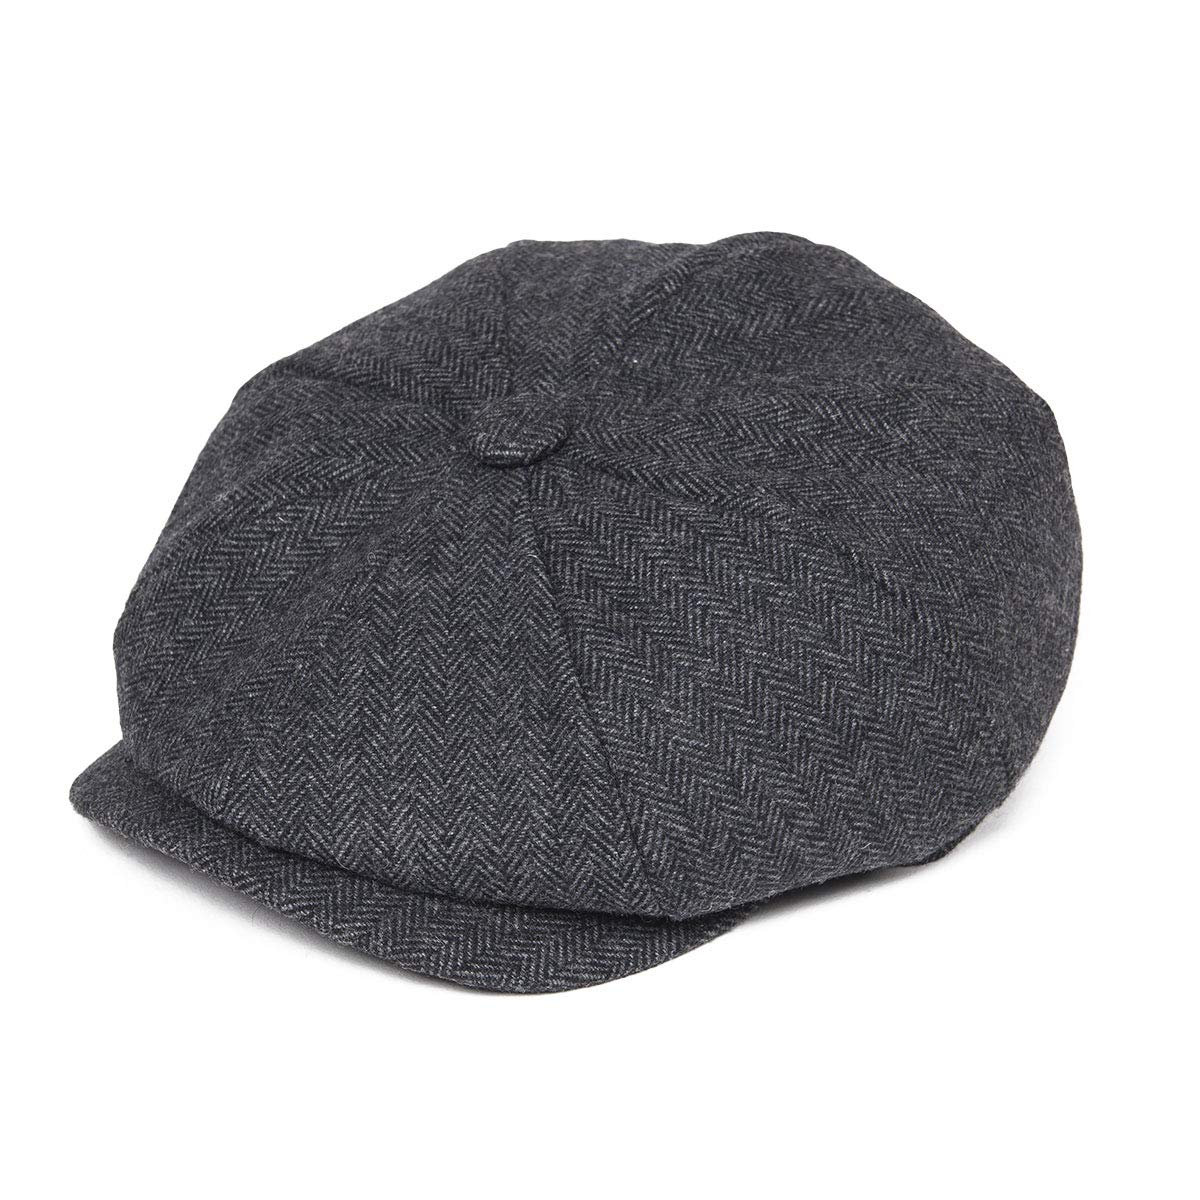 1920s Men's Hats – 8 Popular Styles BOTVELA Mens 8 Piece Wool Blend Newsboy Flat Cap Herringbone Pattern in Classic 5 Colors $19.99 AT vintagedancer.com